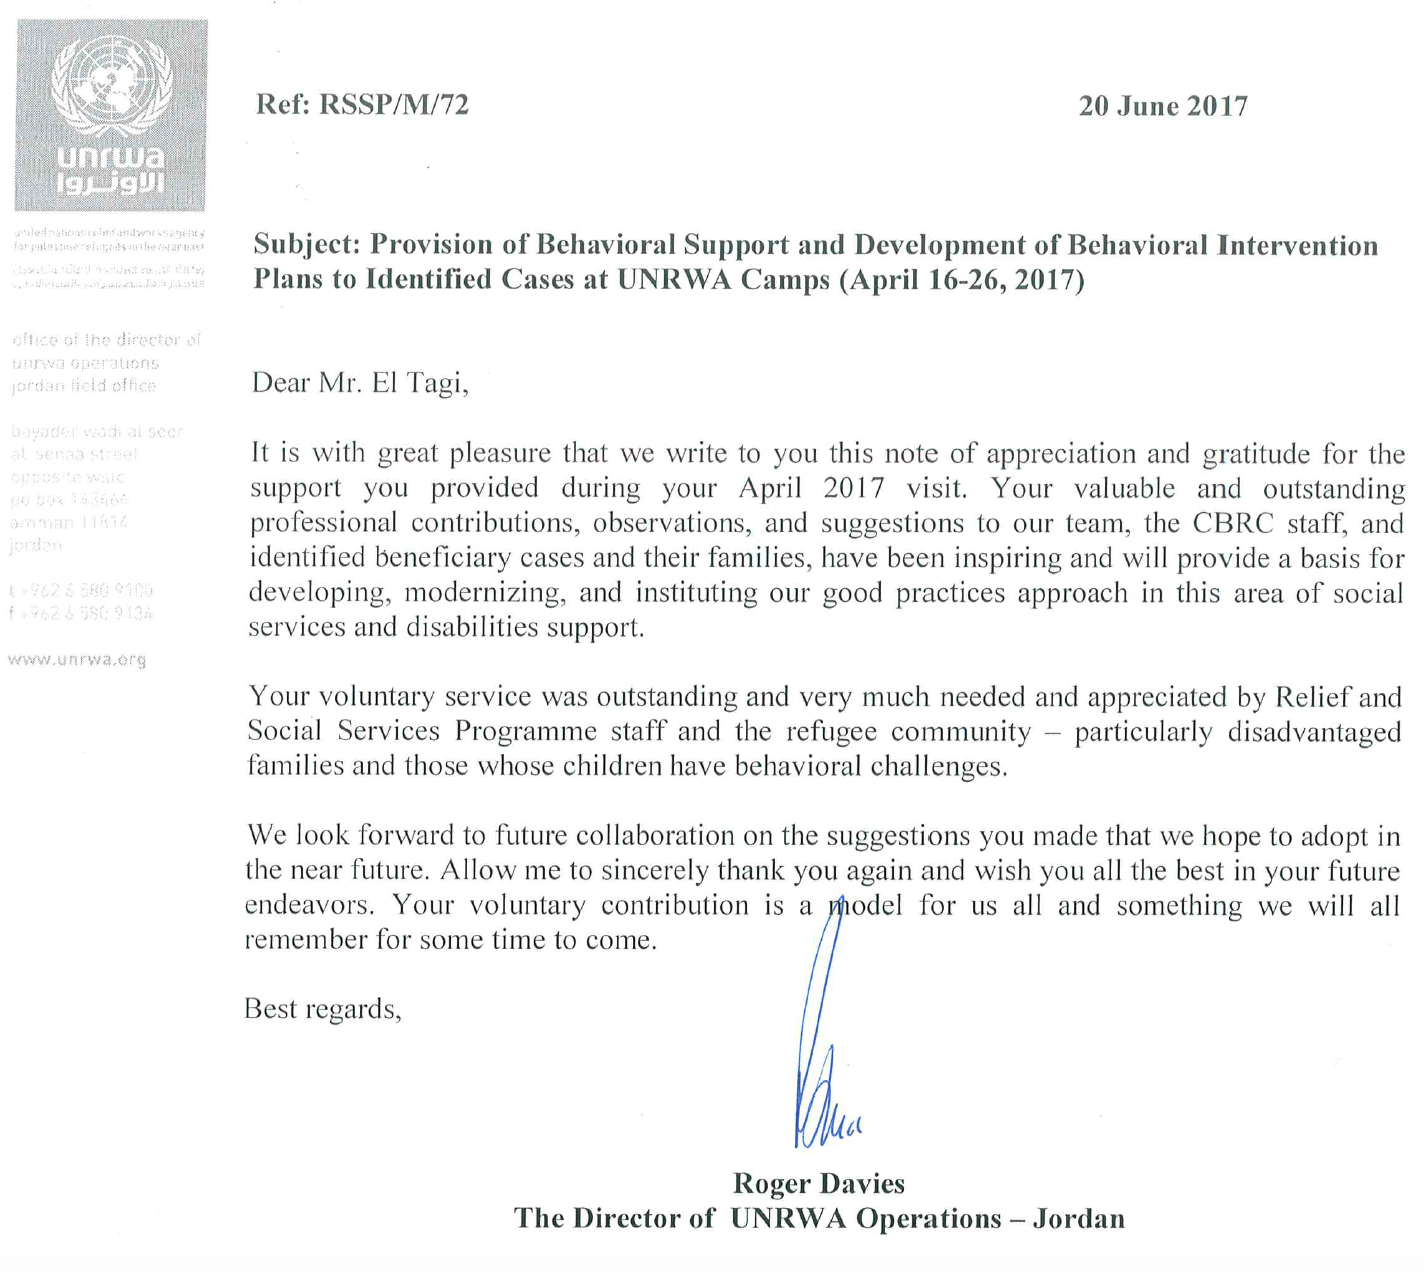 Thank You Letter From Roger Davies Director Of Unrwa Operations Jordan